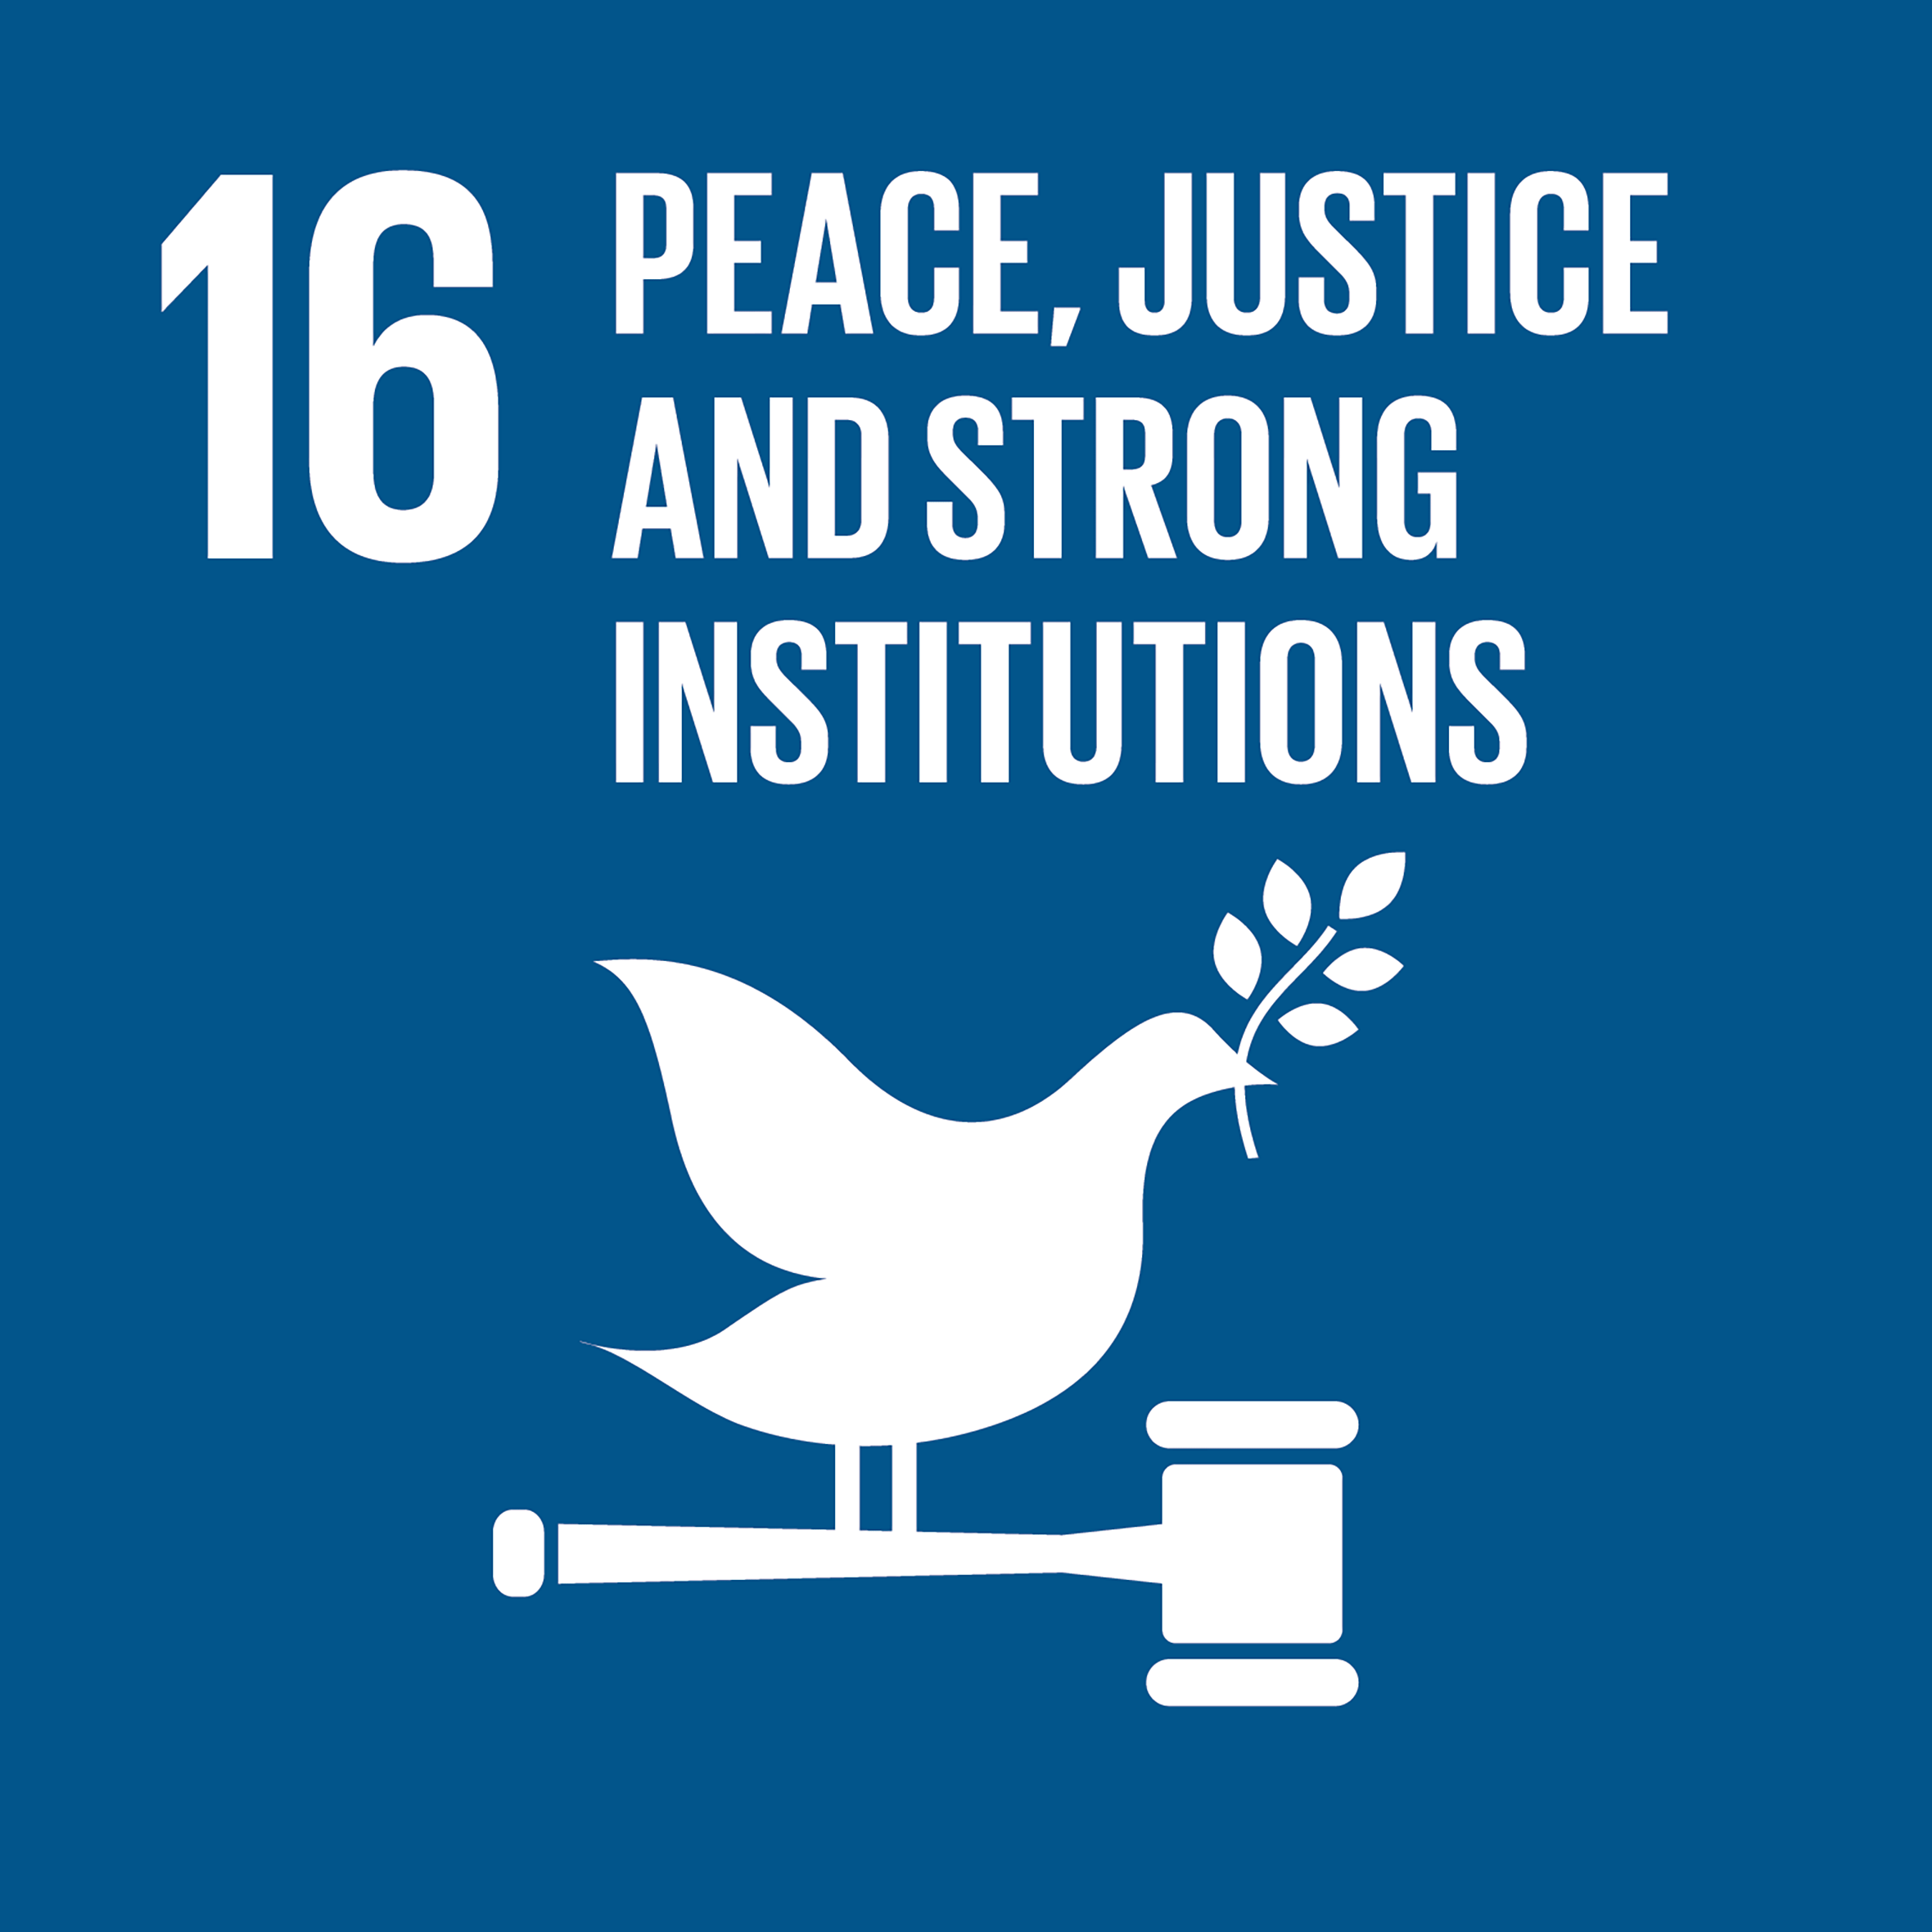 SDG-peace-justice-institution